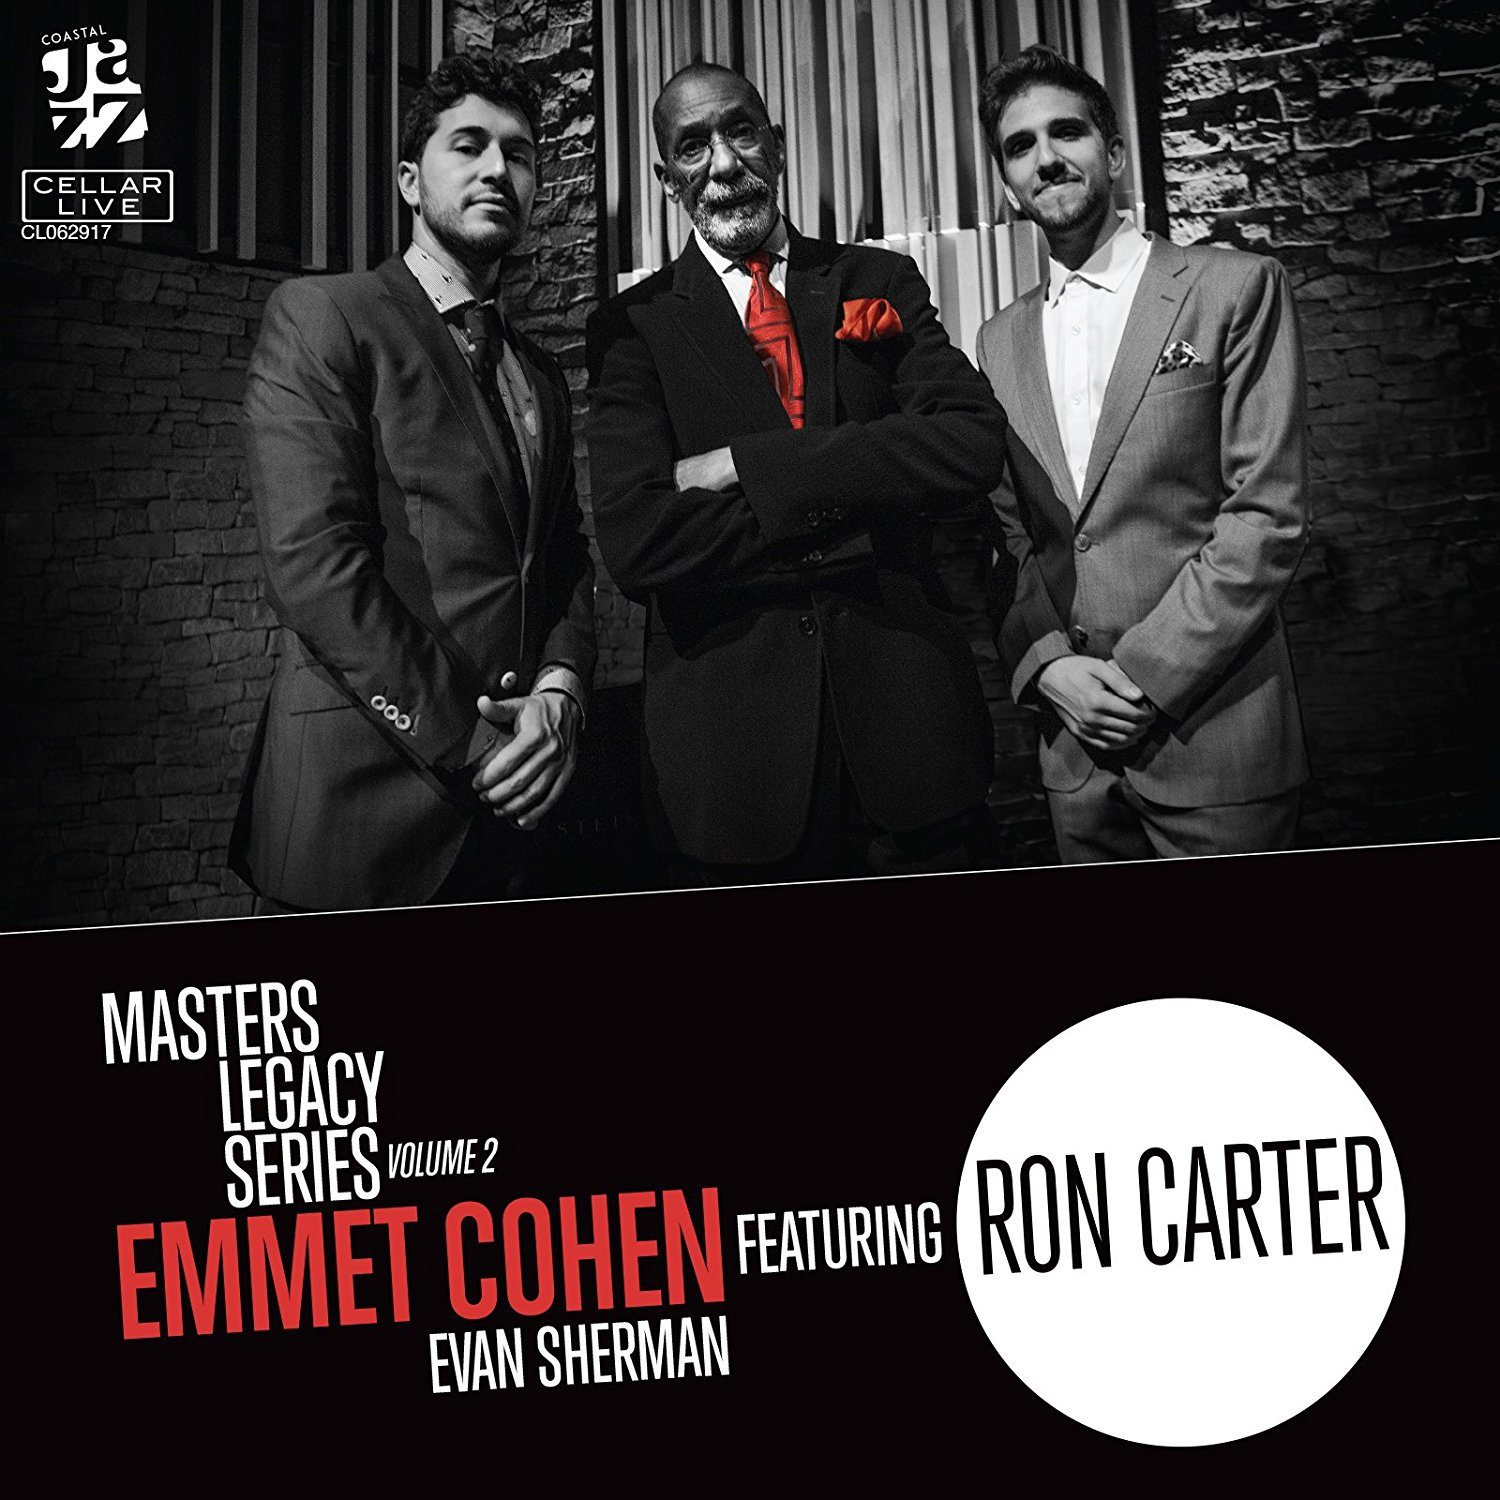 CD : Emmet Cohen - Masters Legacy Series 2: Ron Carter (CD)